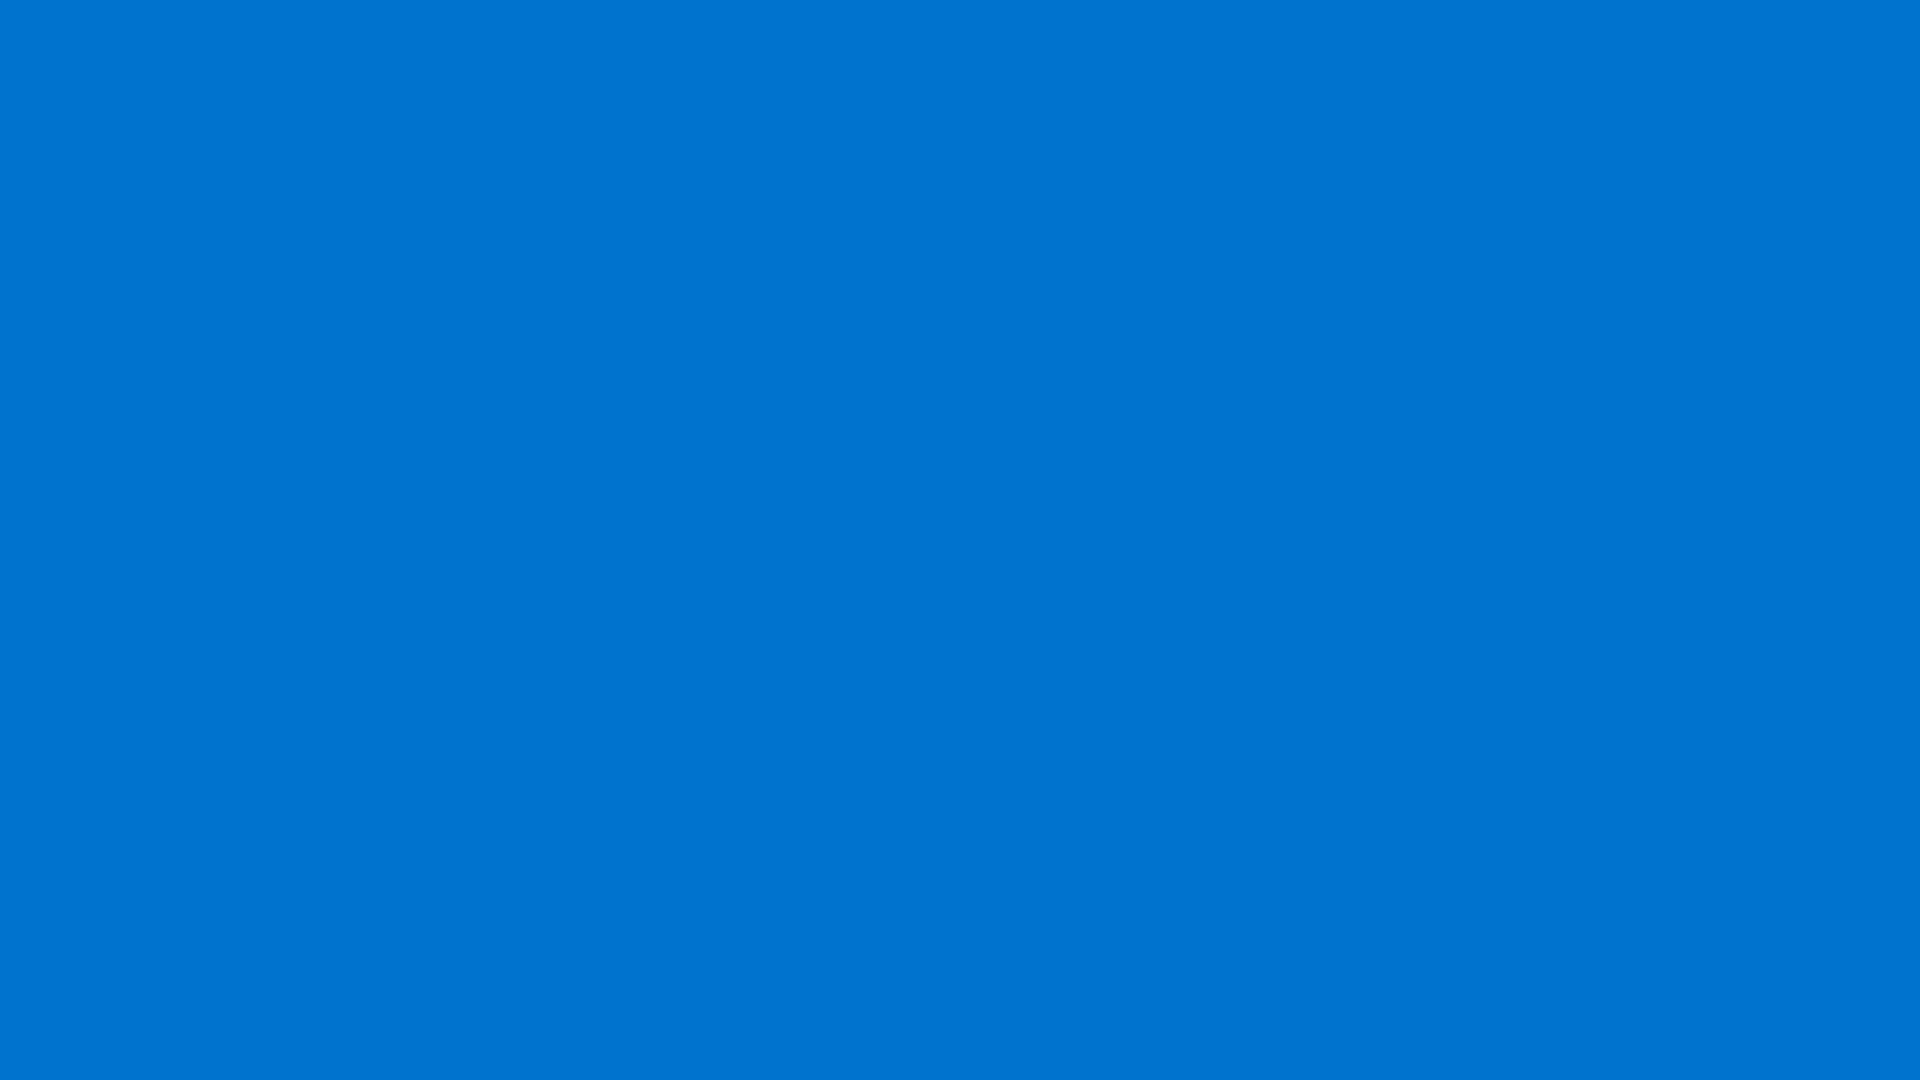 1920x1080 True Blue Solid Color Background